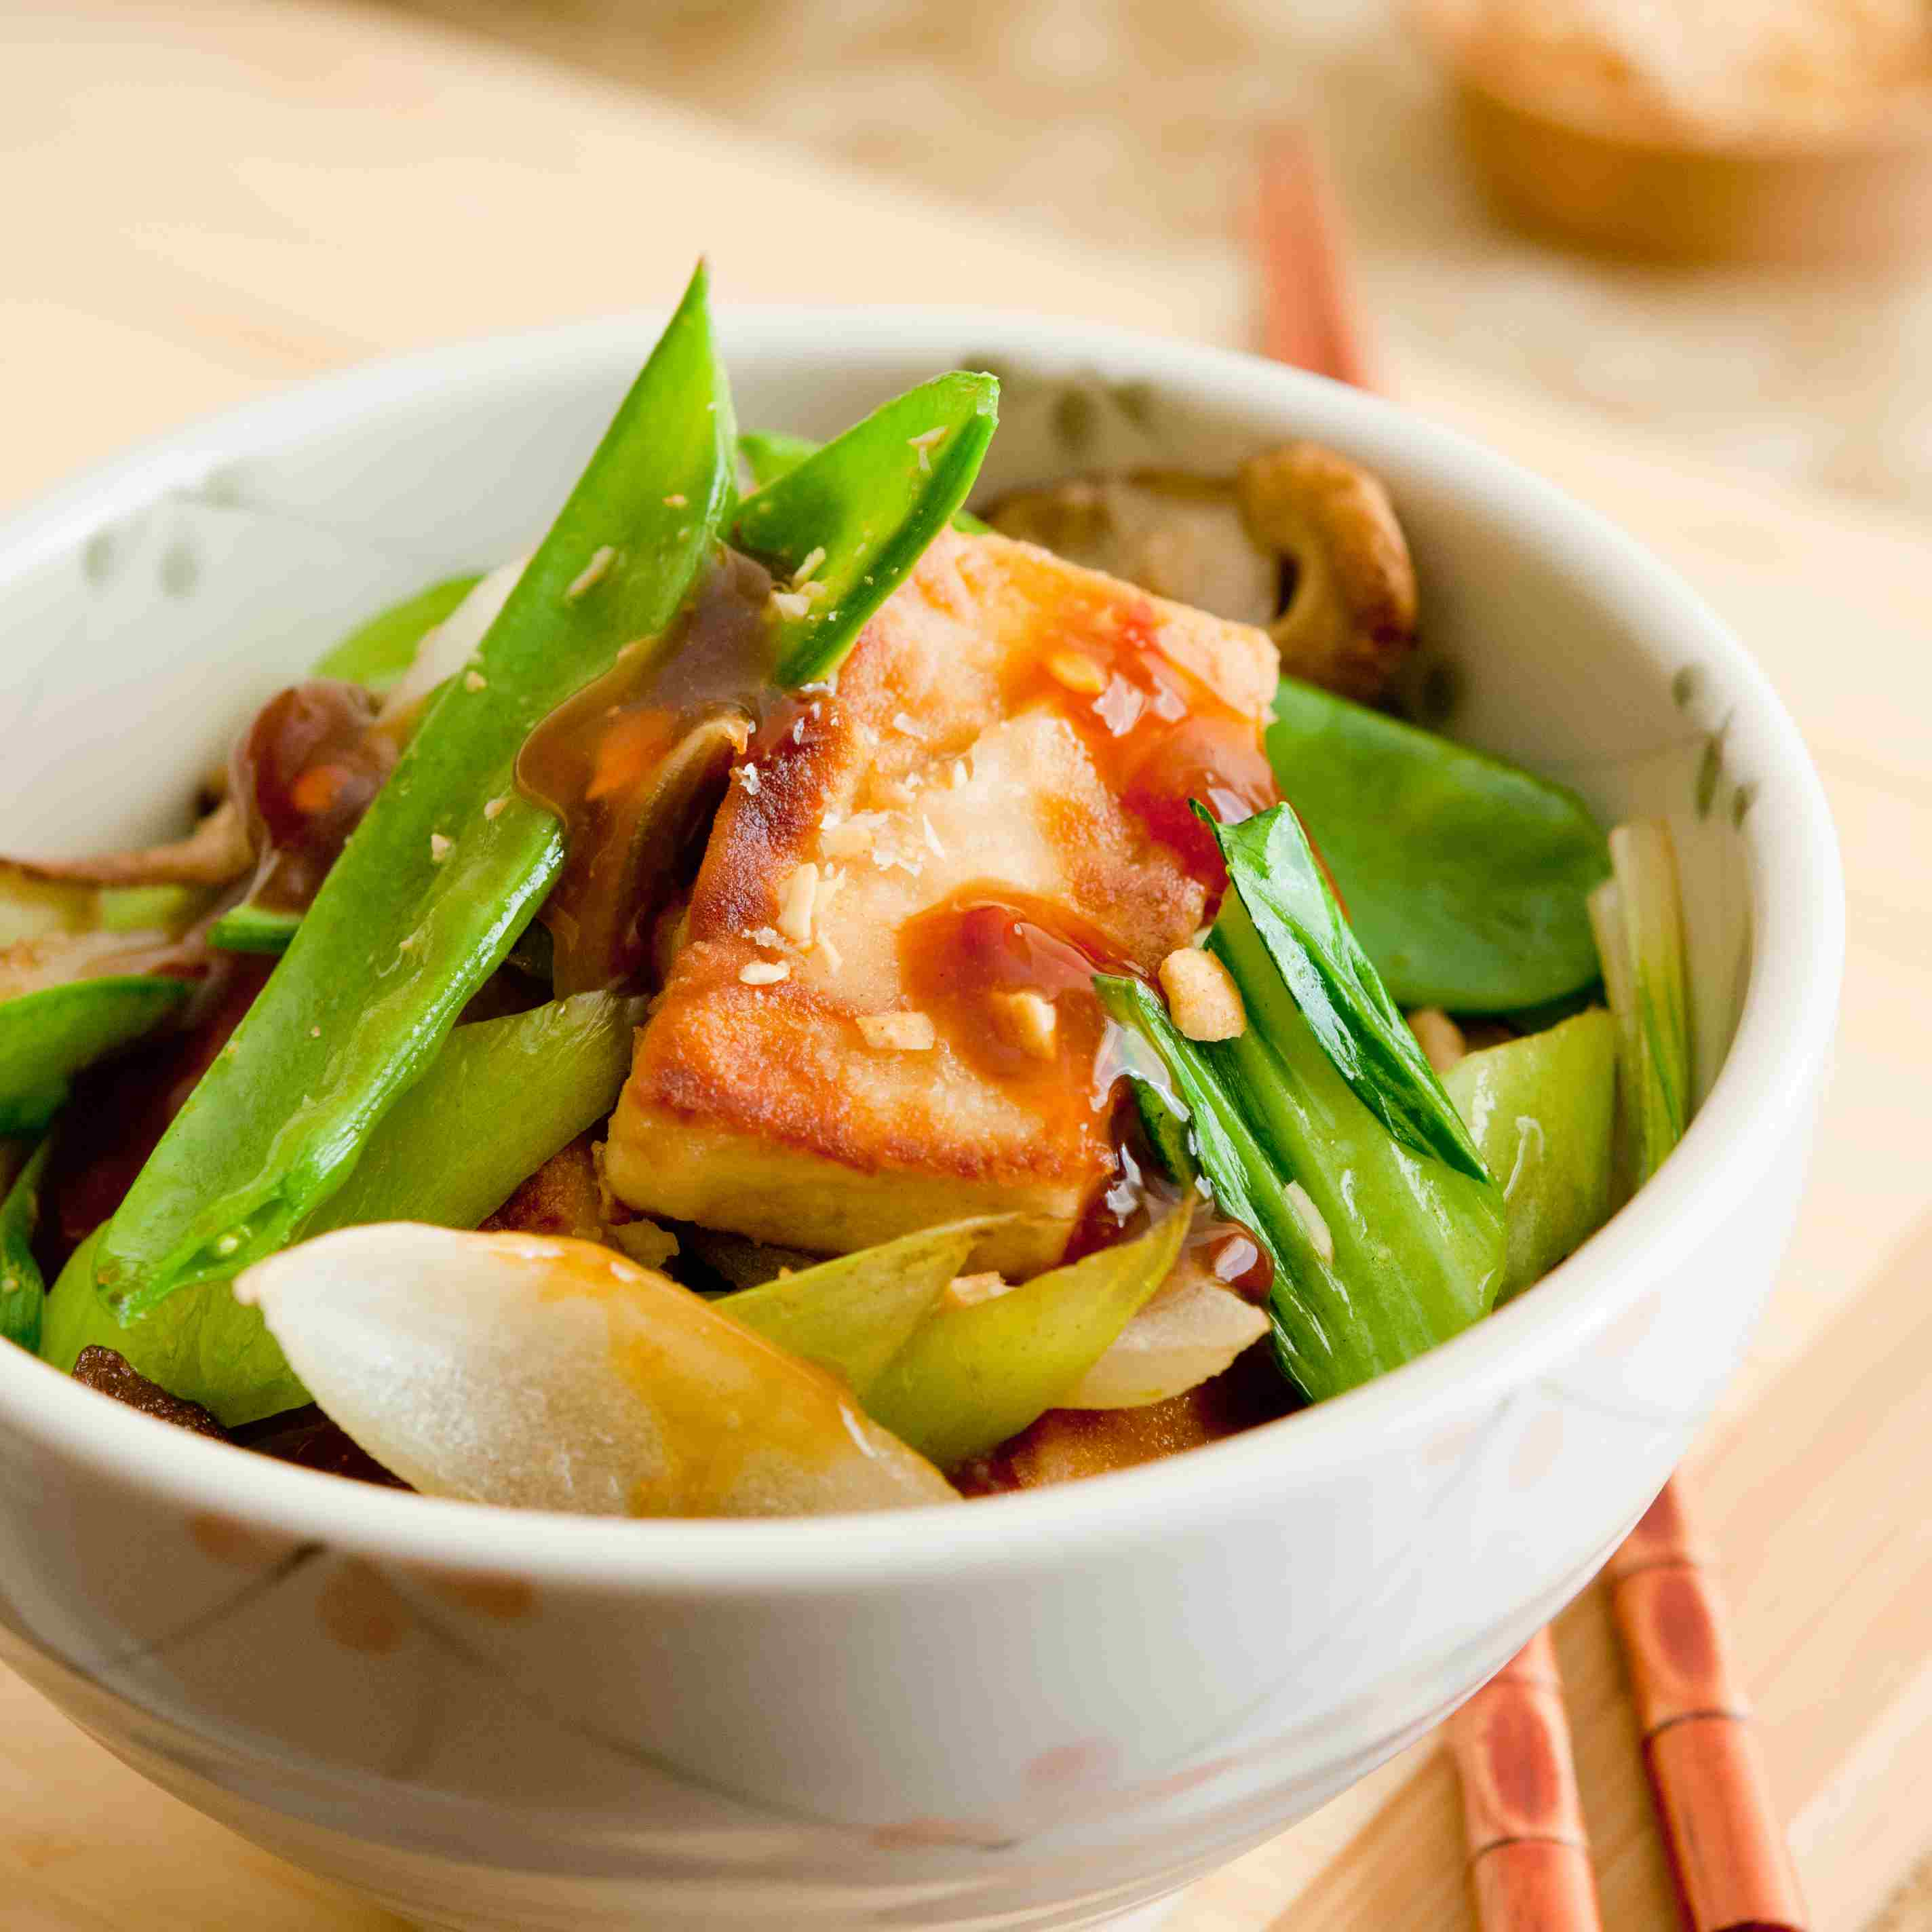 Vegetable stir-fry with tofu in a bowl along with chopsticks